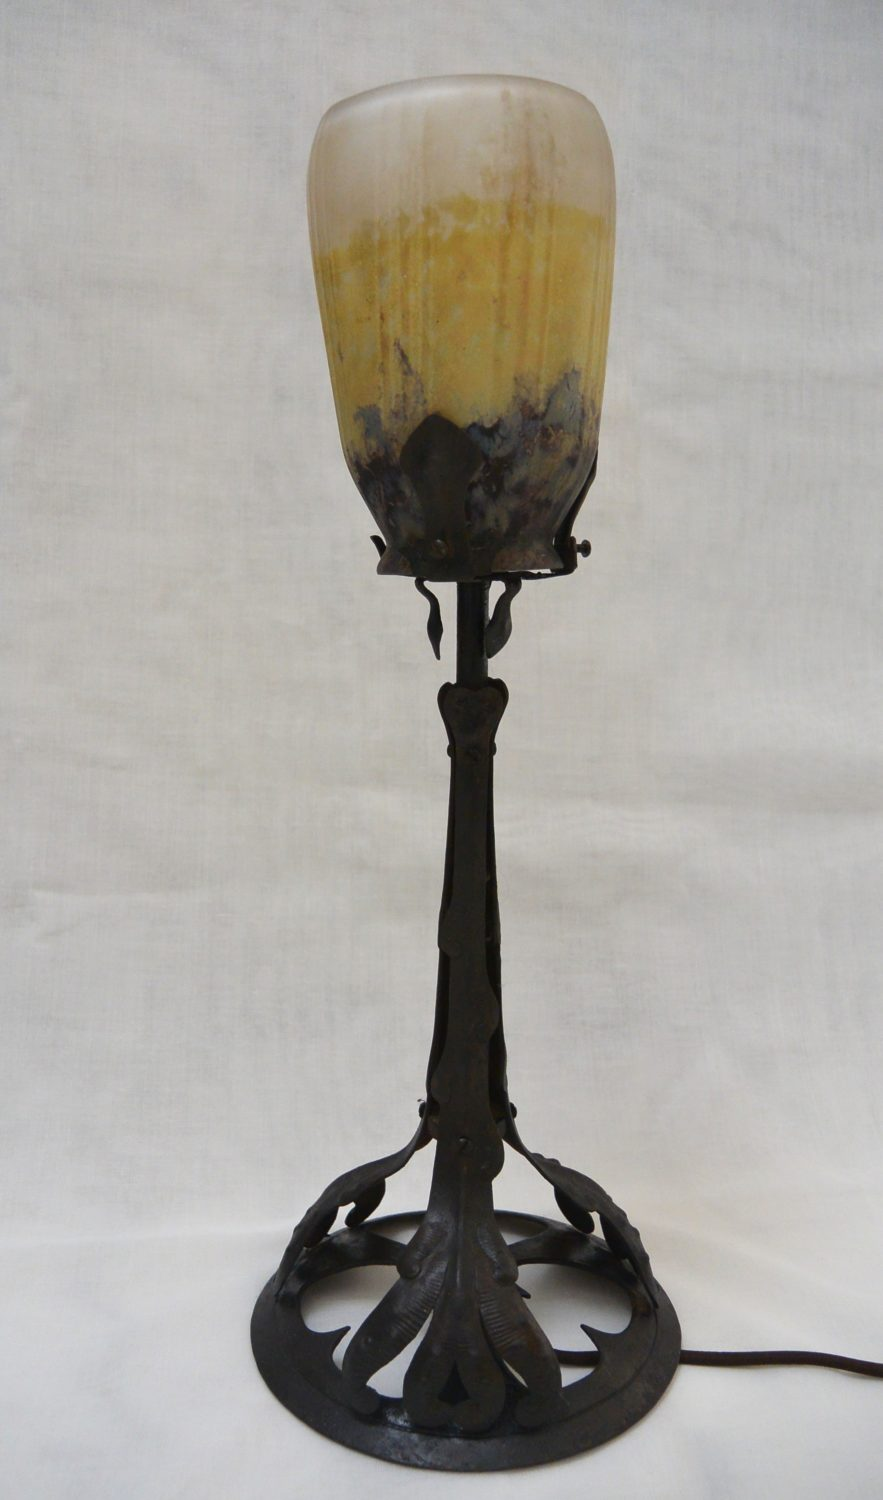 Daum and Majorelle - Art Nouveau table lamp